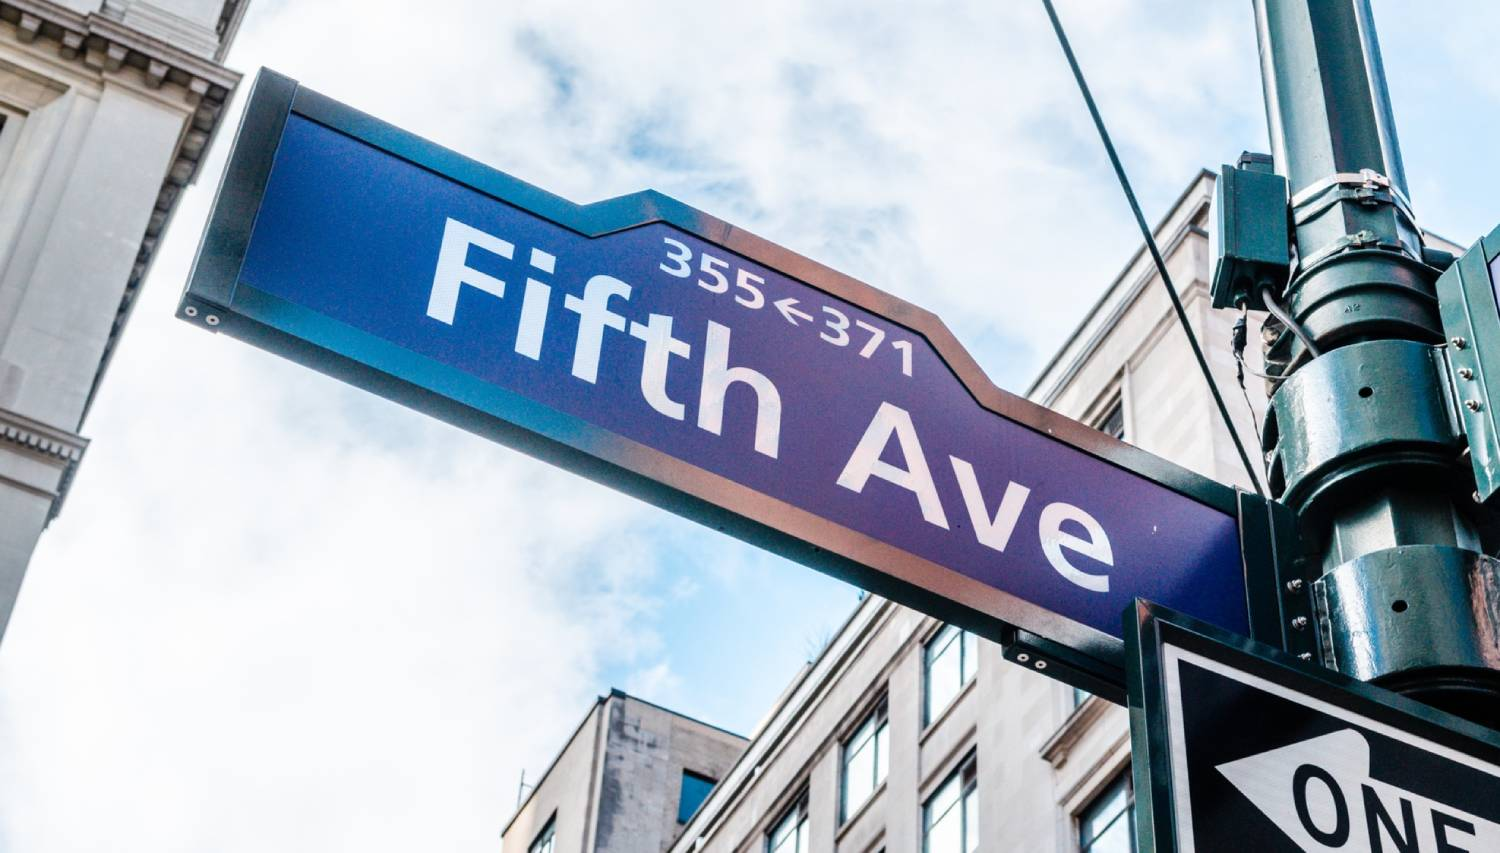 Fifth Avenue - Things To Do In New York City